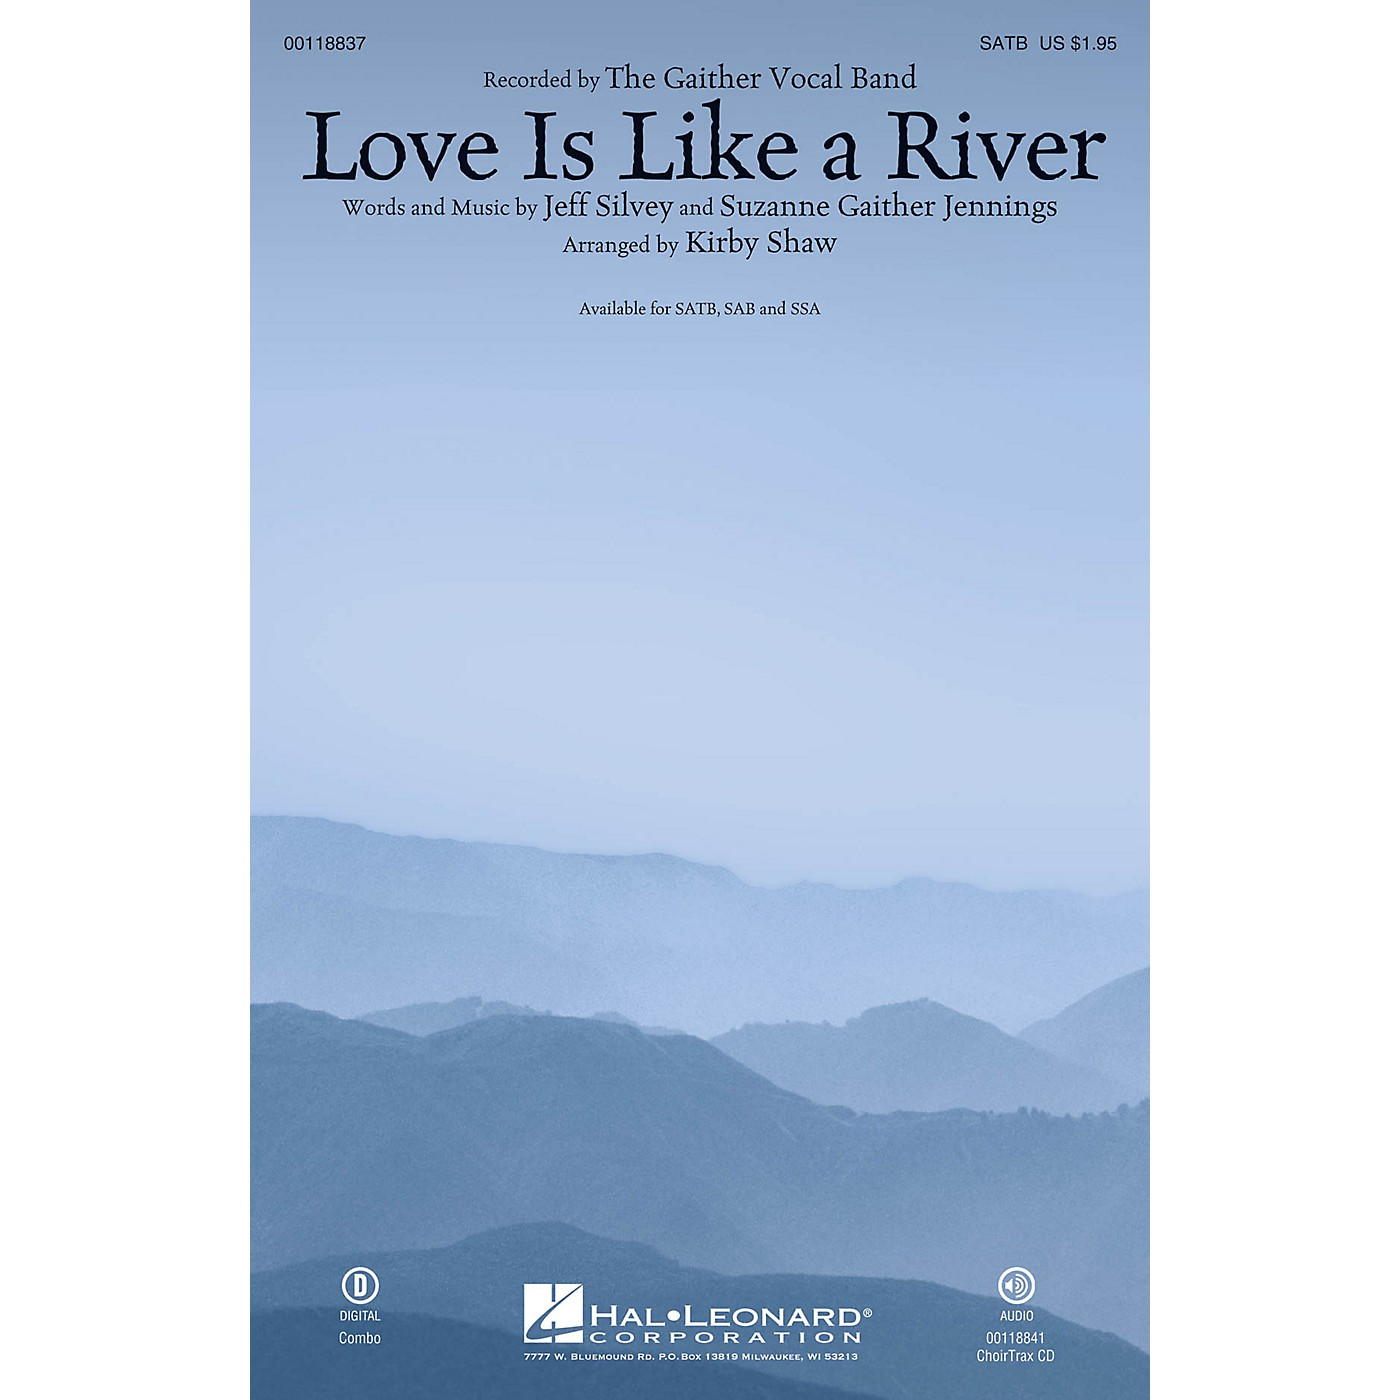 Hal Leonard Love Is Like a River SSA by Gaither Vocal Band Arranged by Kirby Shaw thumbnail